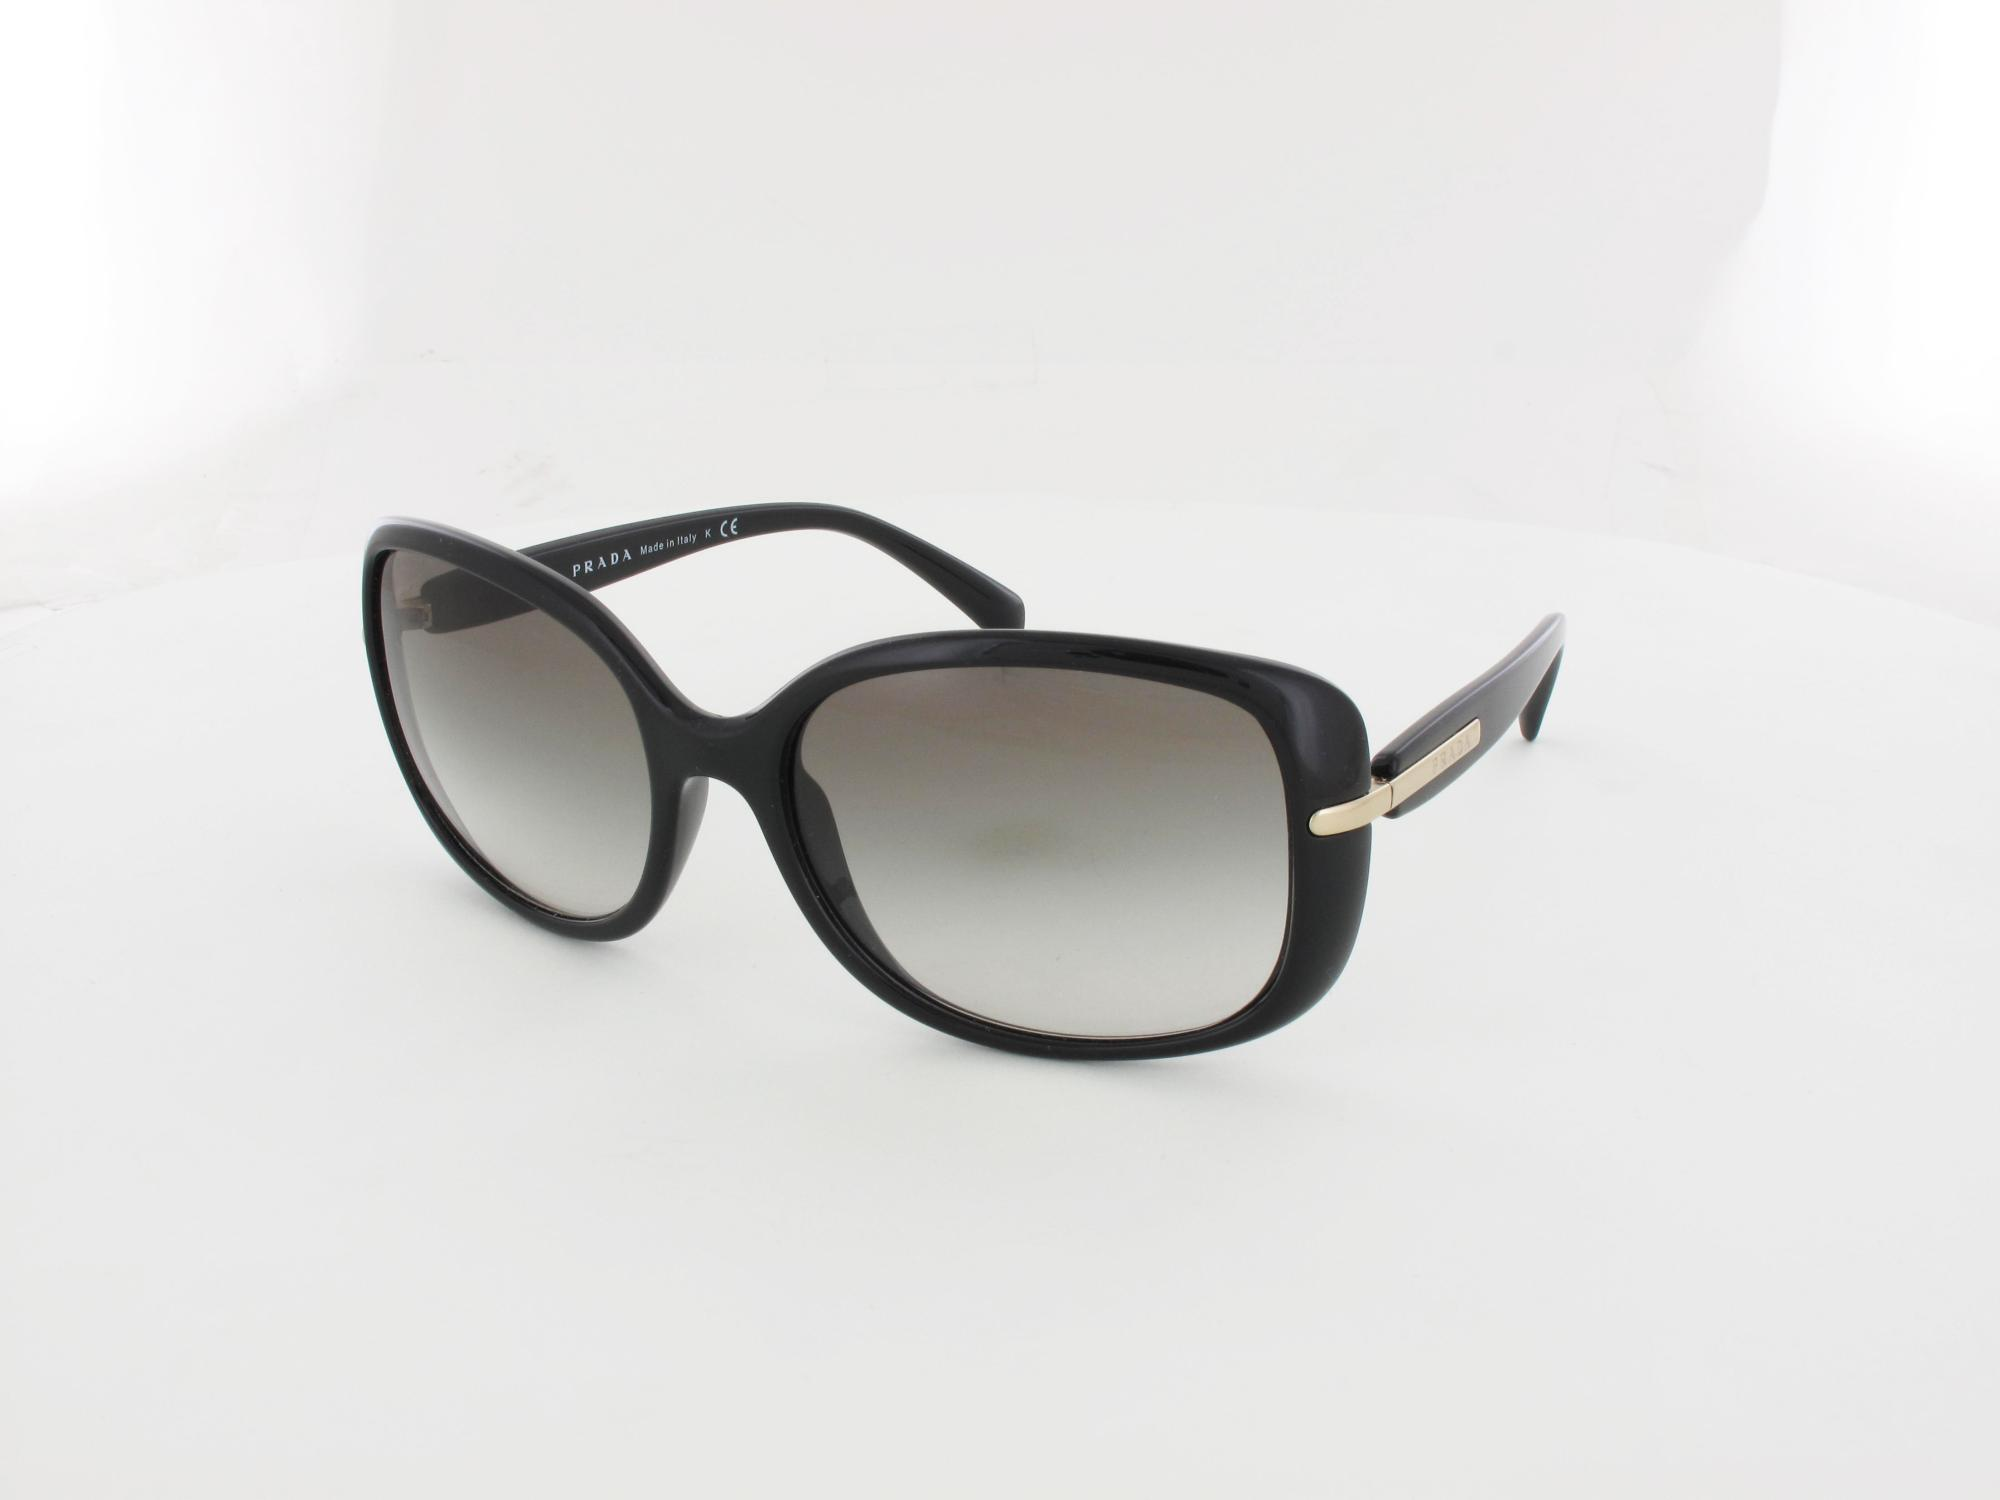 Prada | PR08OS 1AB0A7 57 | black / grey gradient